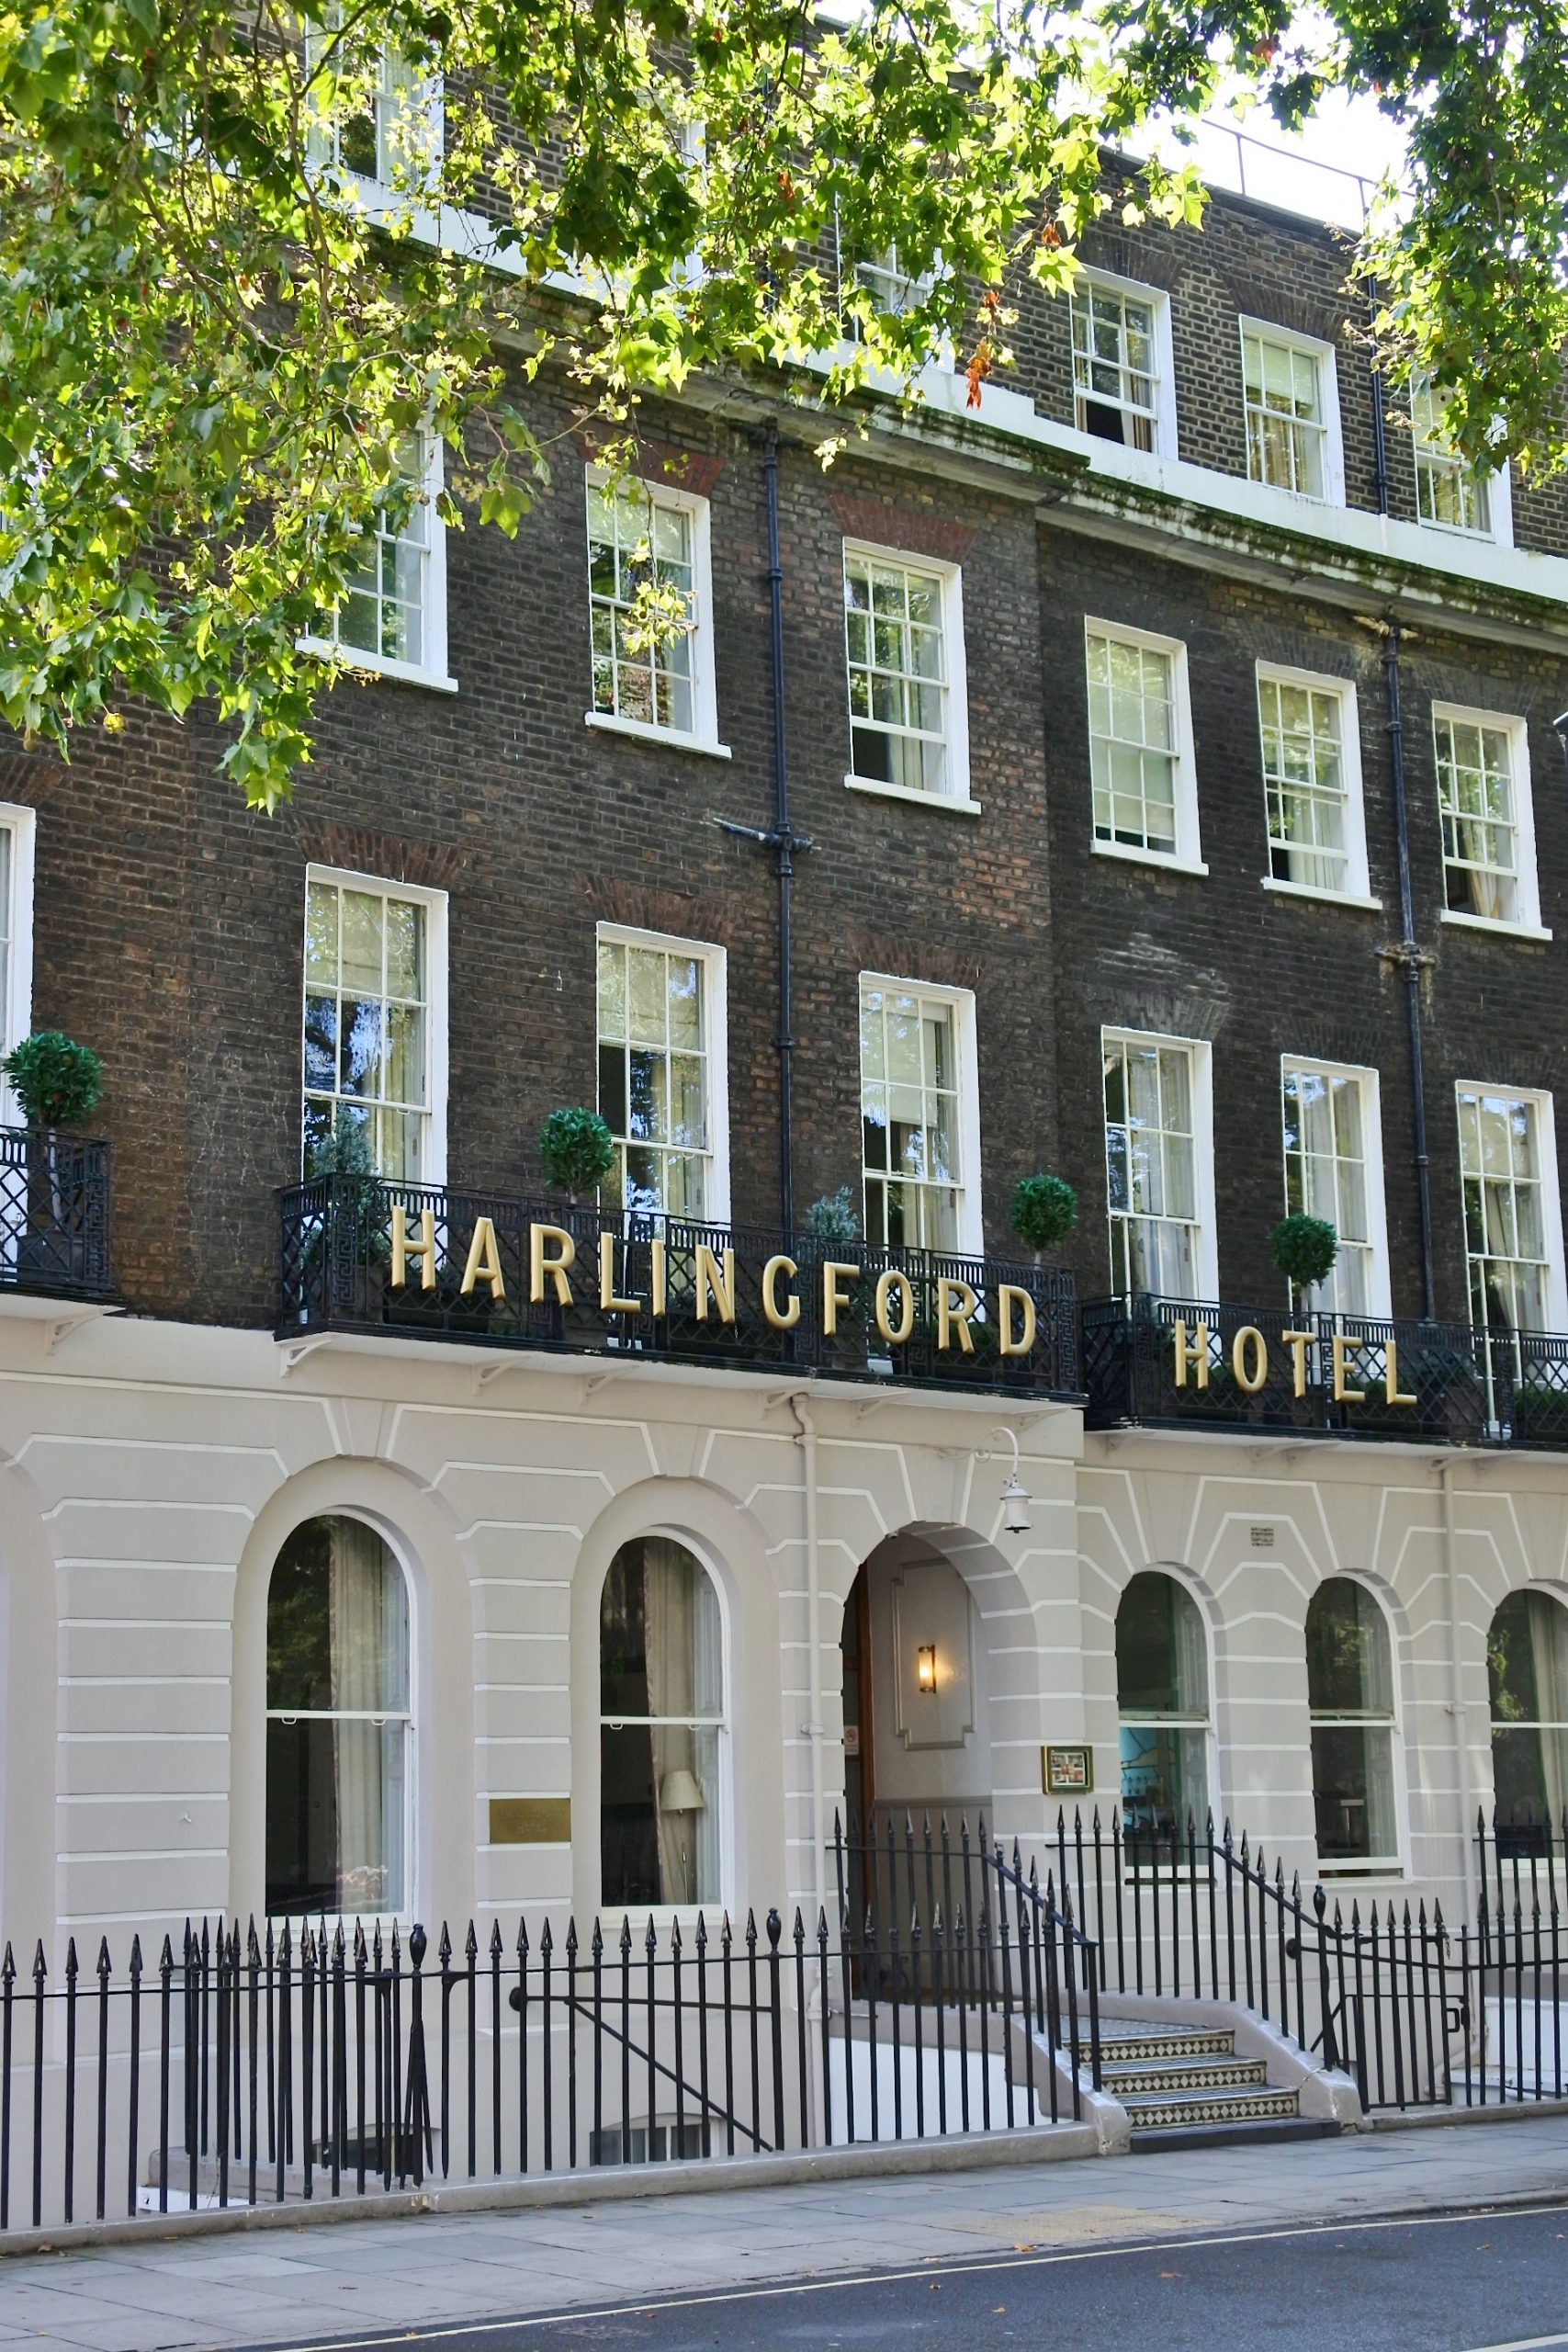 The Harlingford